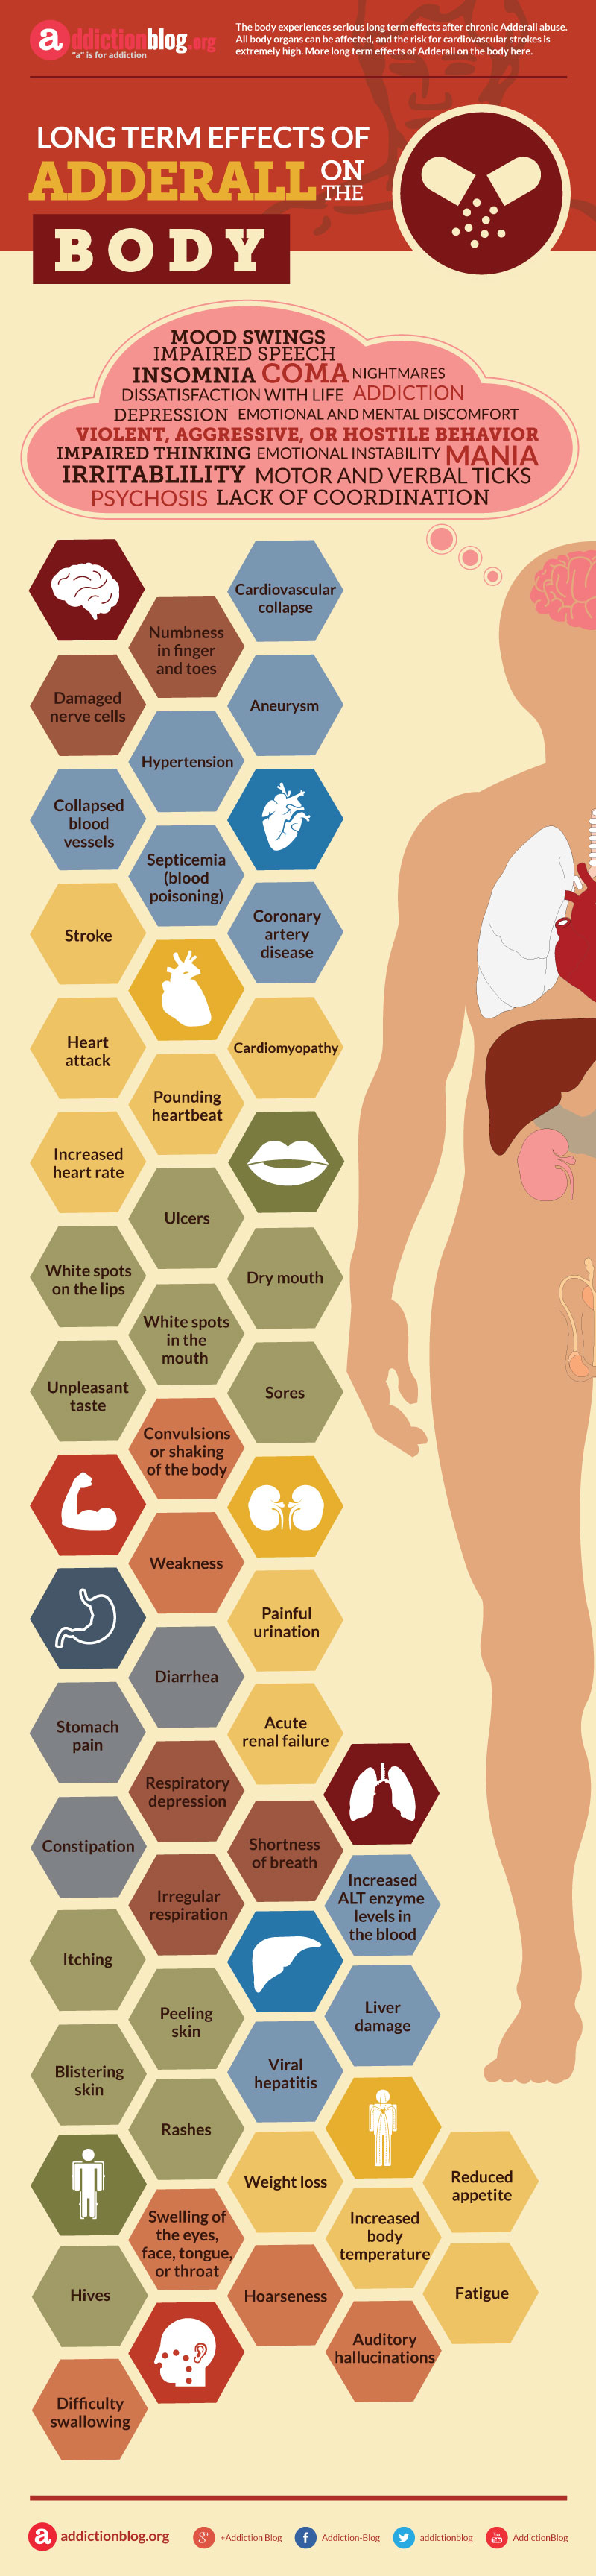 Long Term Effects of Adderall on the Body (INFOGRAPHIC)